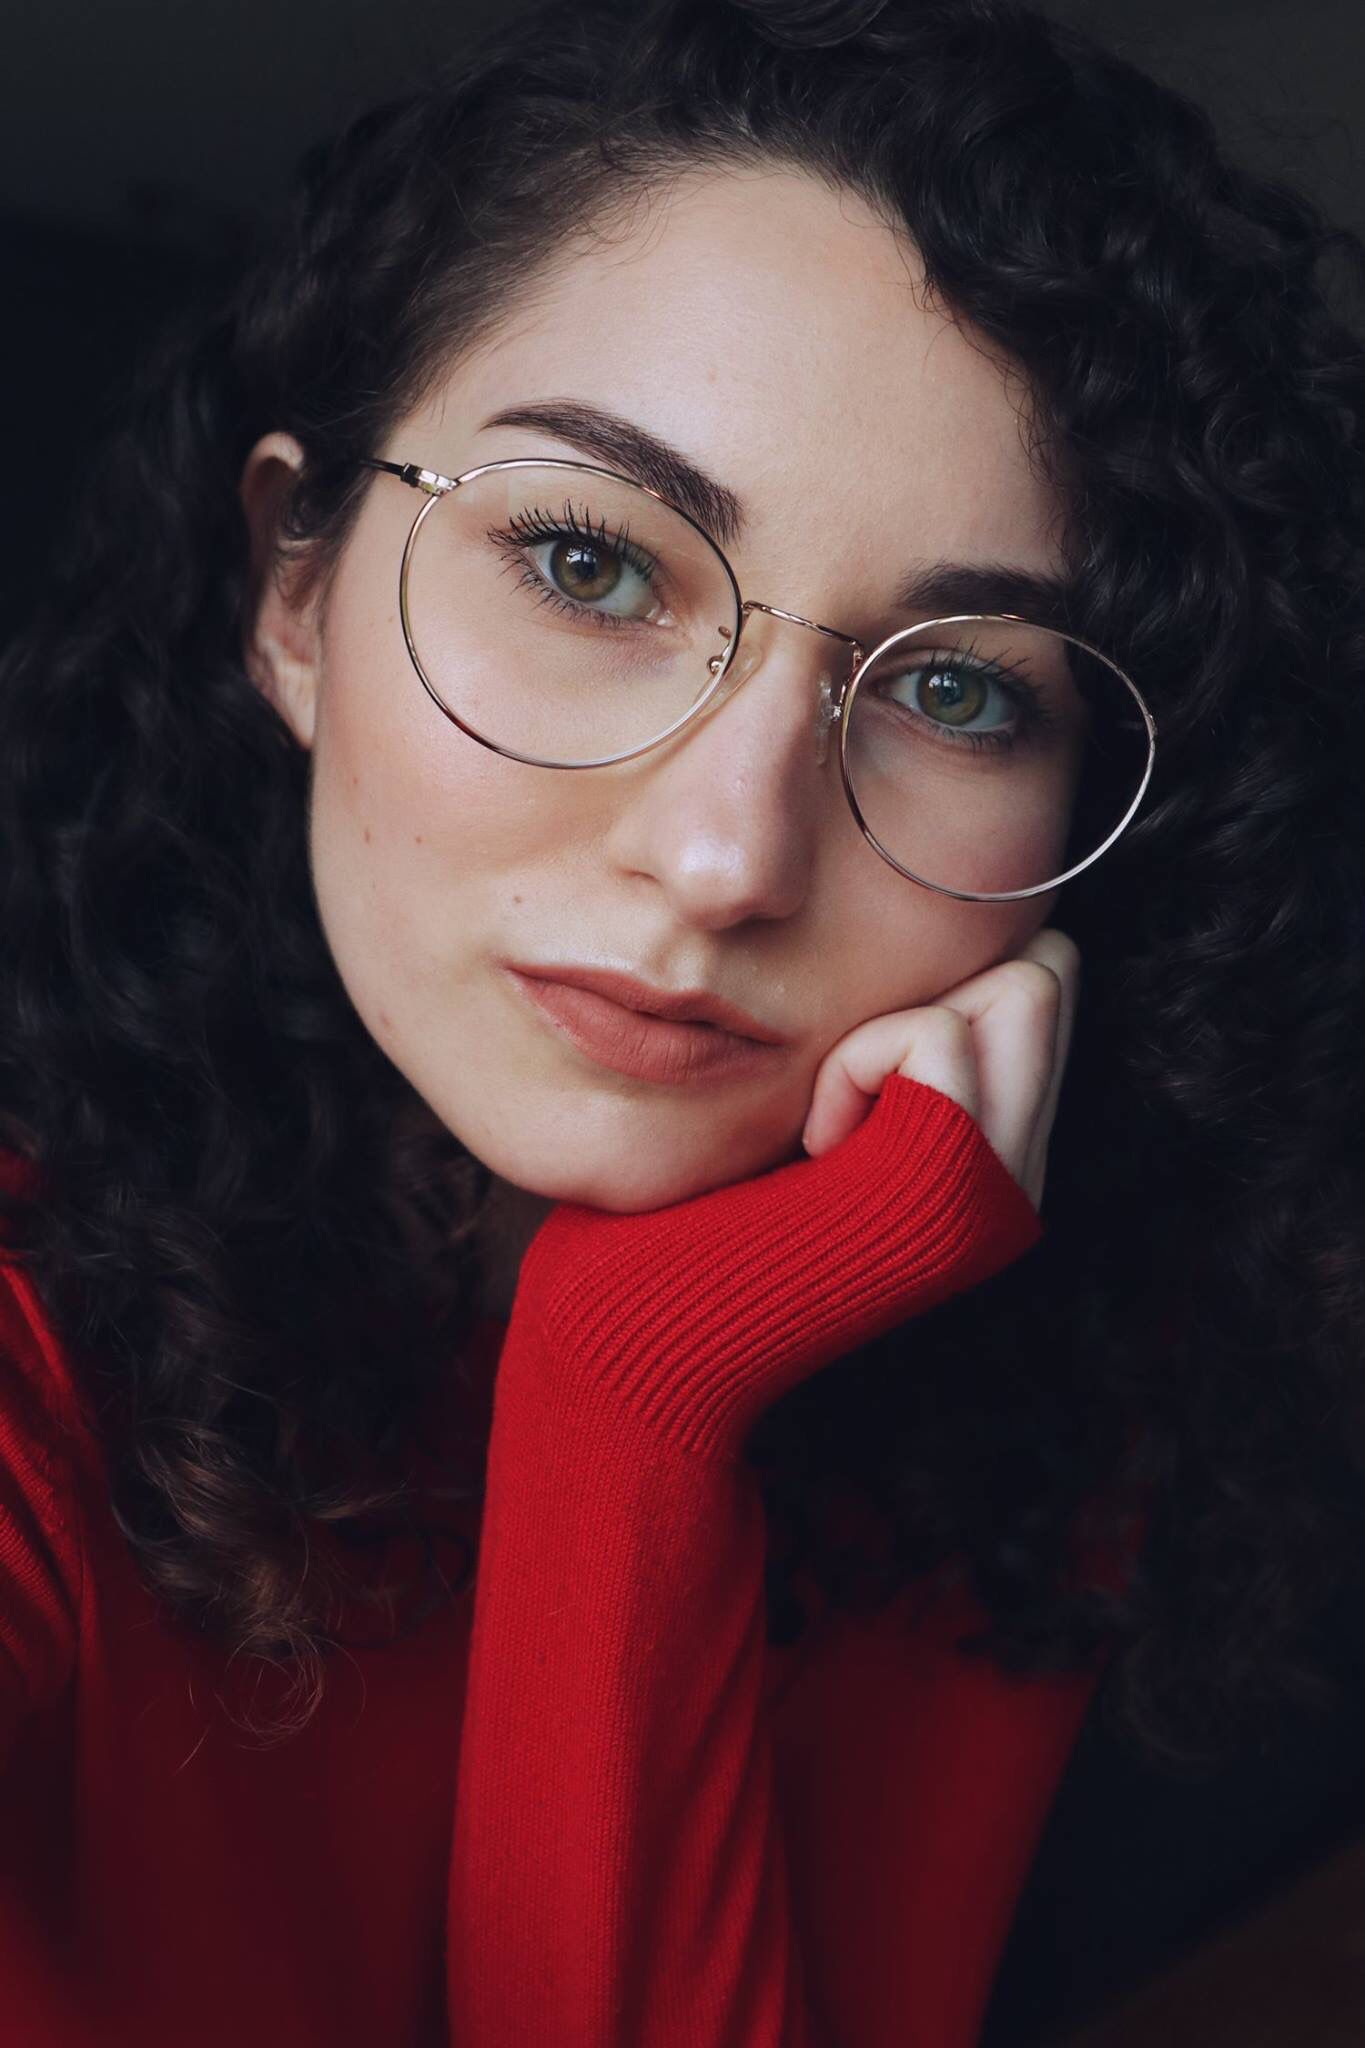 Round Glasses Curly Hair Styles Naturaly Curly Hair Glasses Makeup